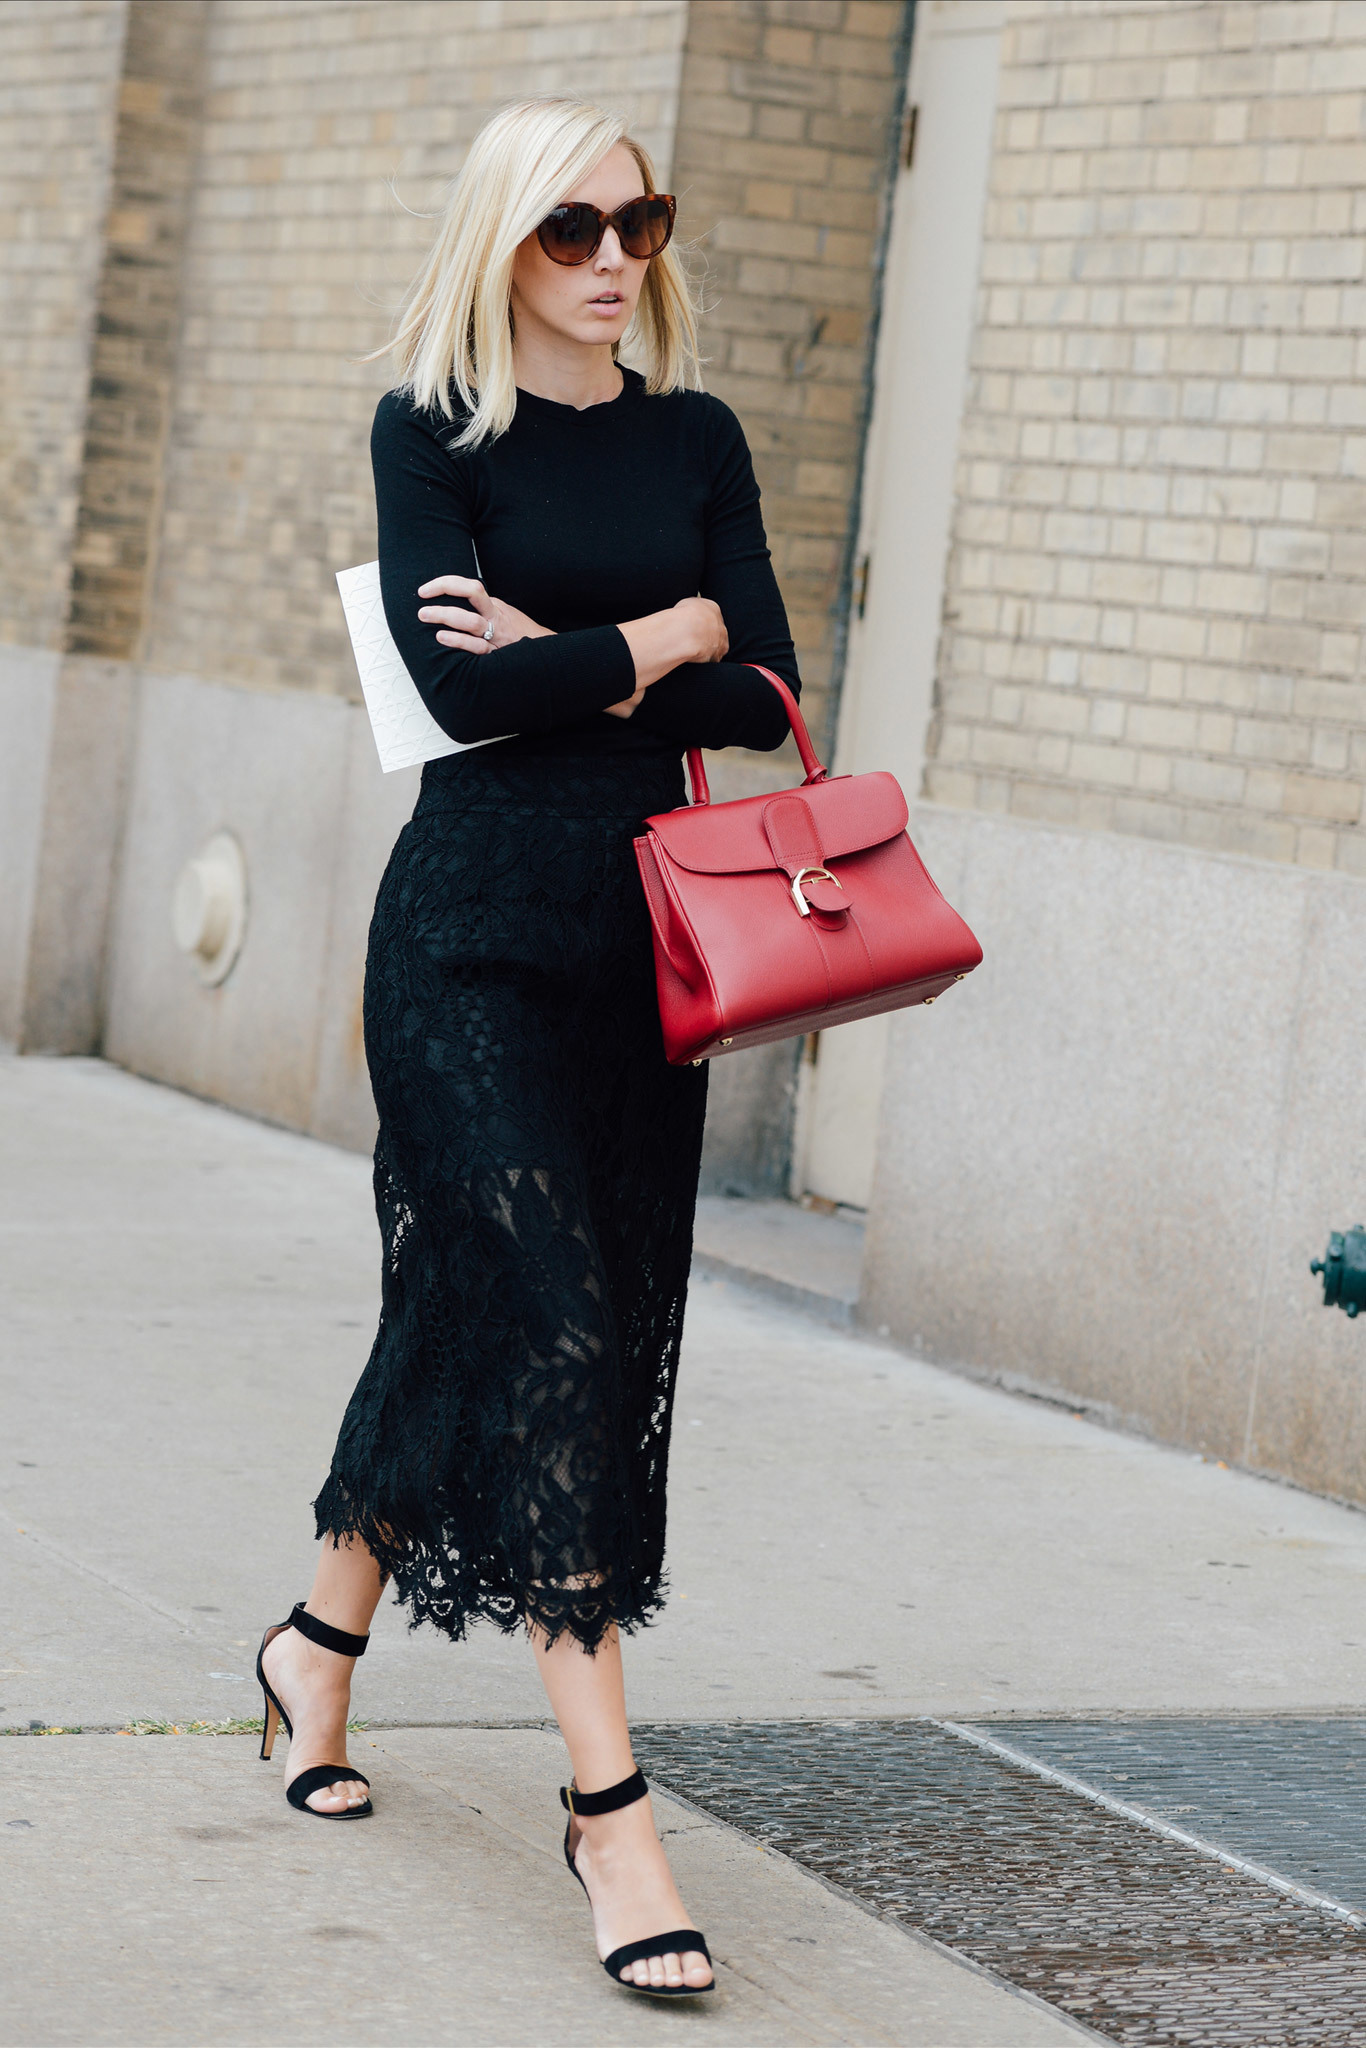 Black Lace Midi Skirt | Women's Fashion